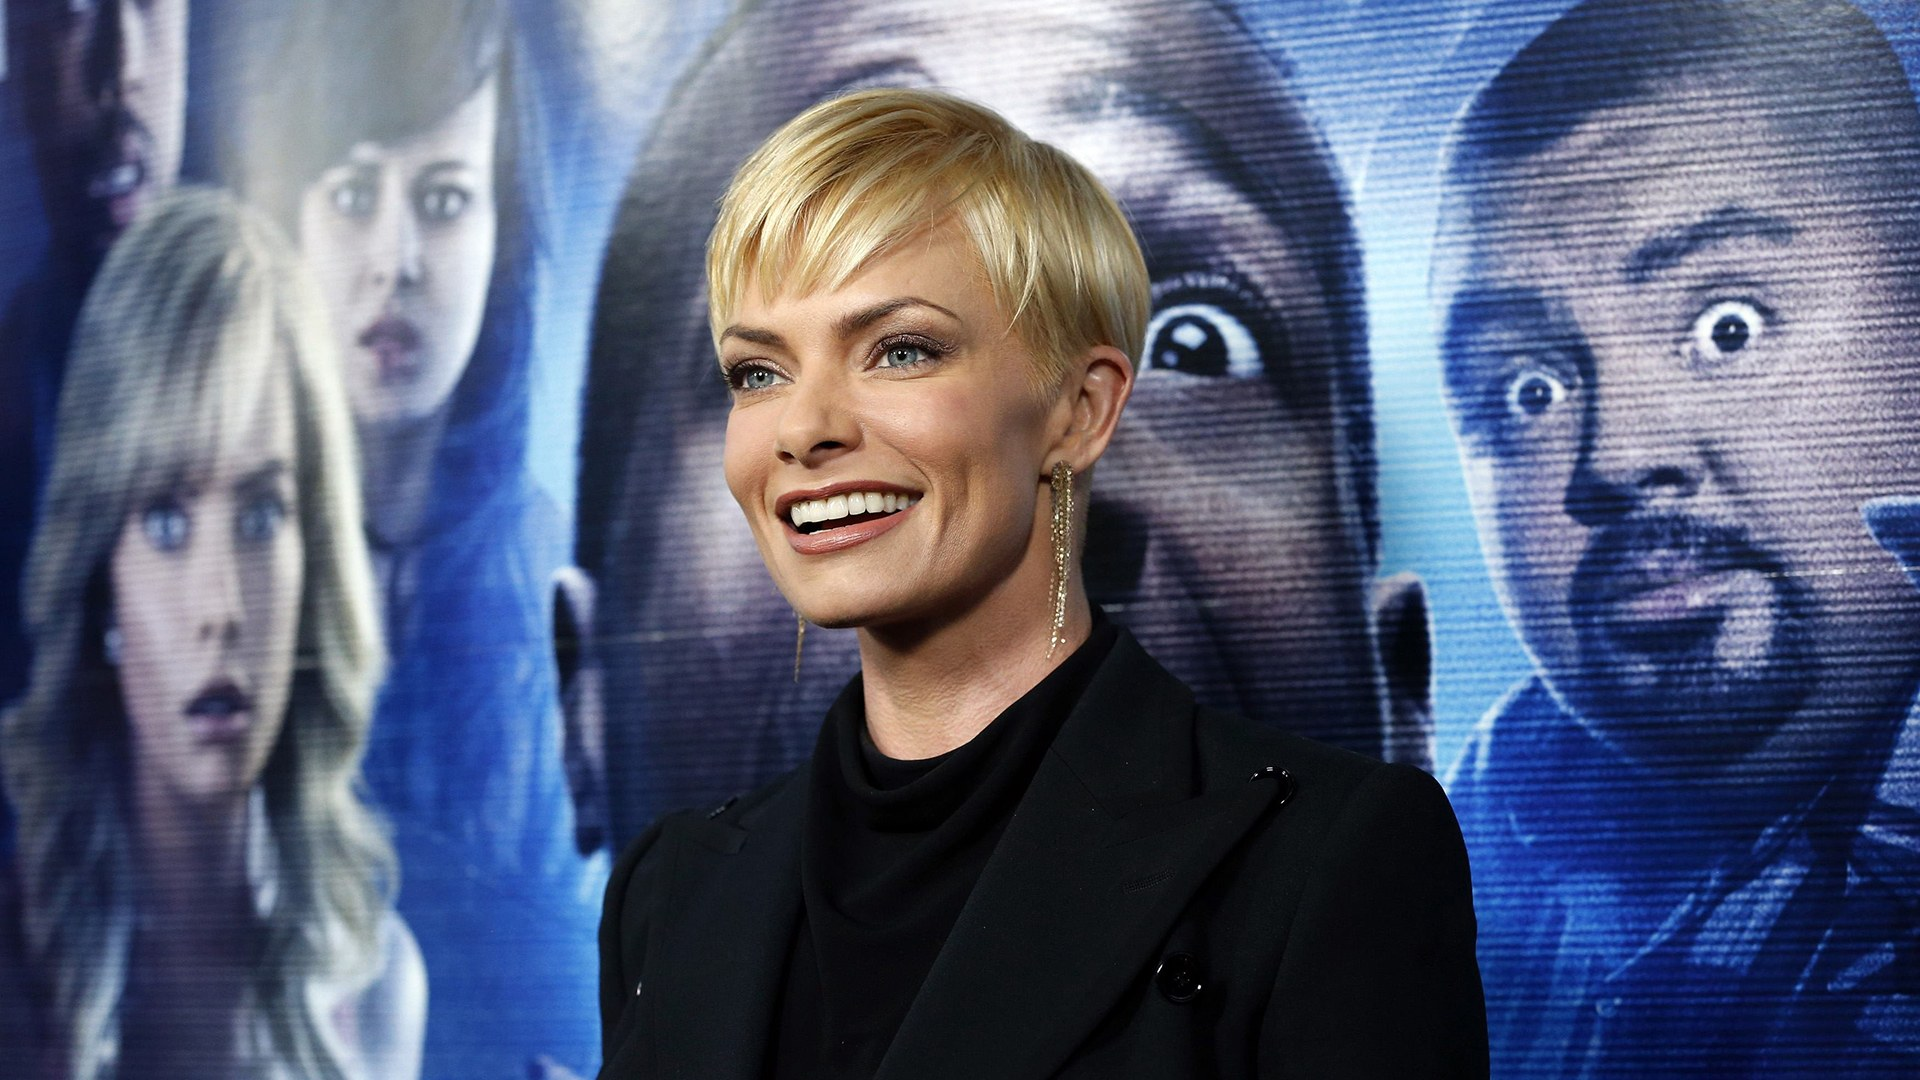 """Image: Cast member Pressly poses at the premiere of """"A Haunted House 2"""" in Los Angeles"""